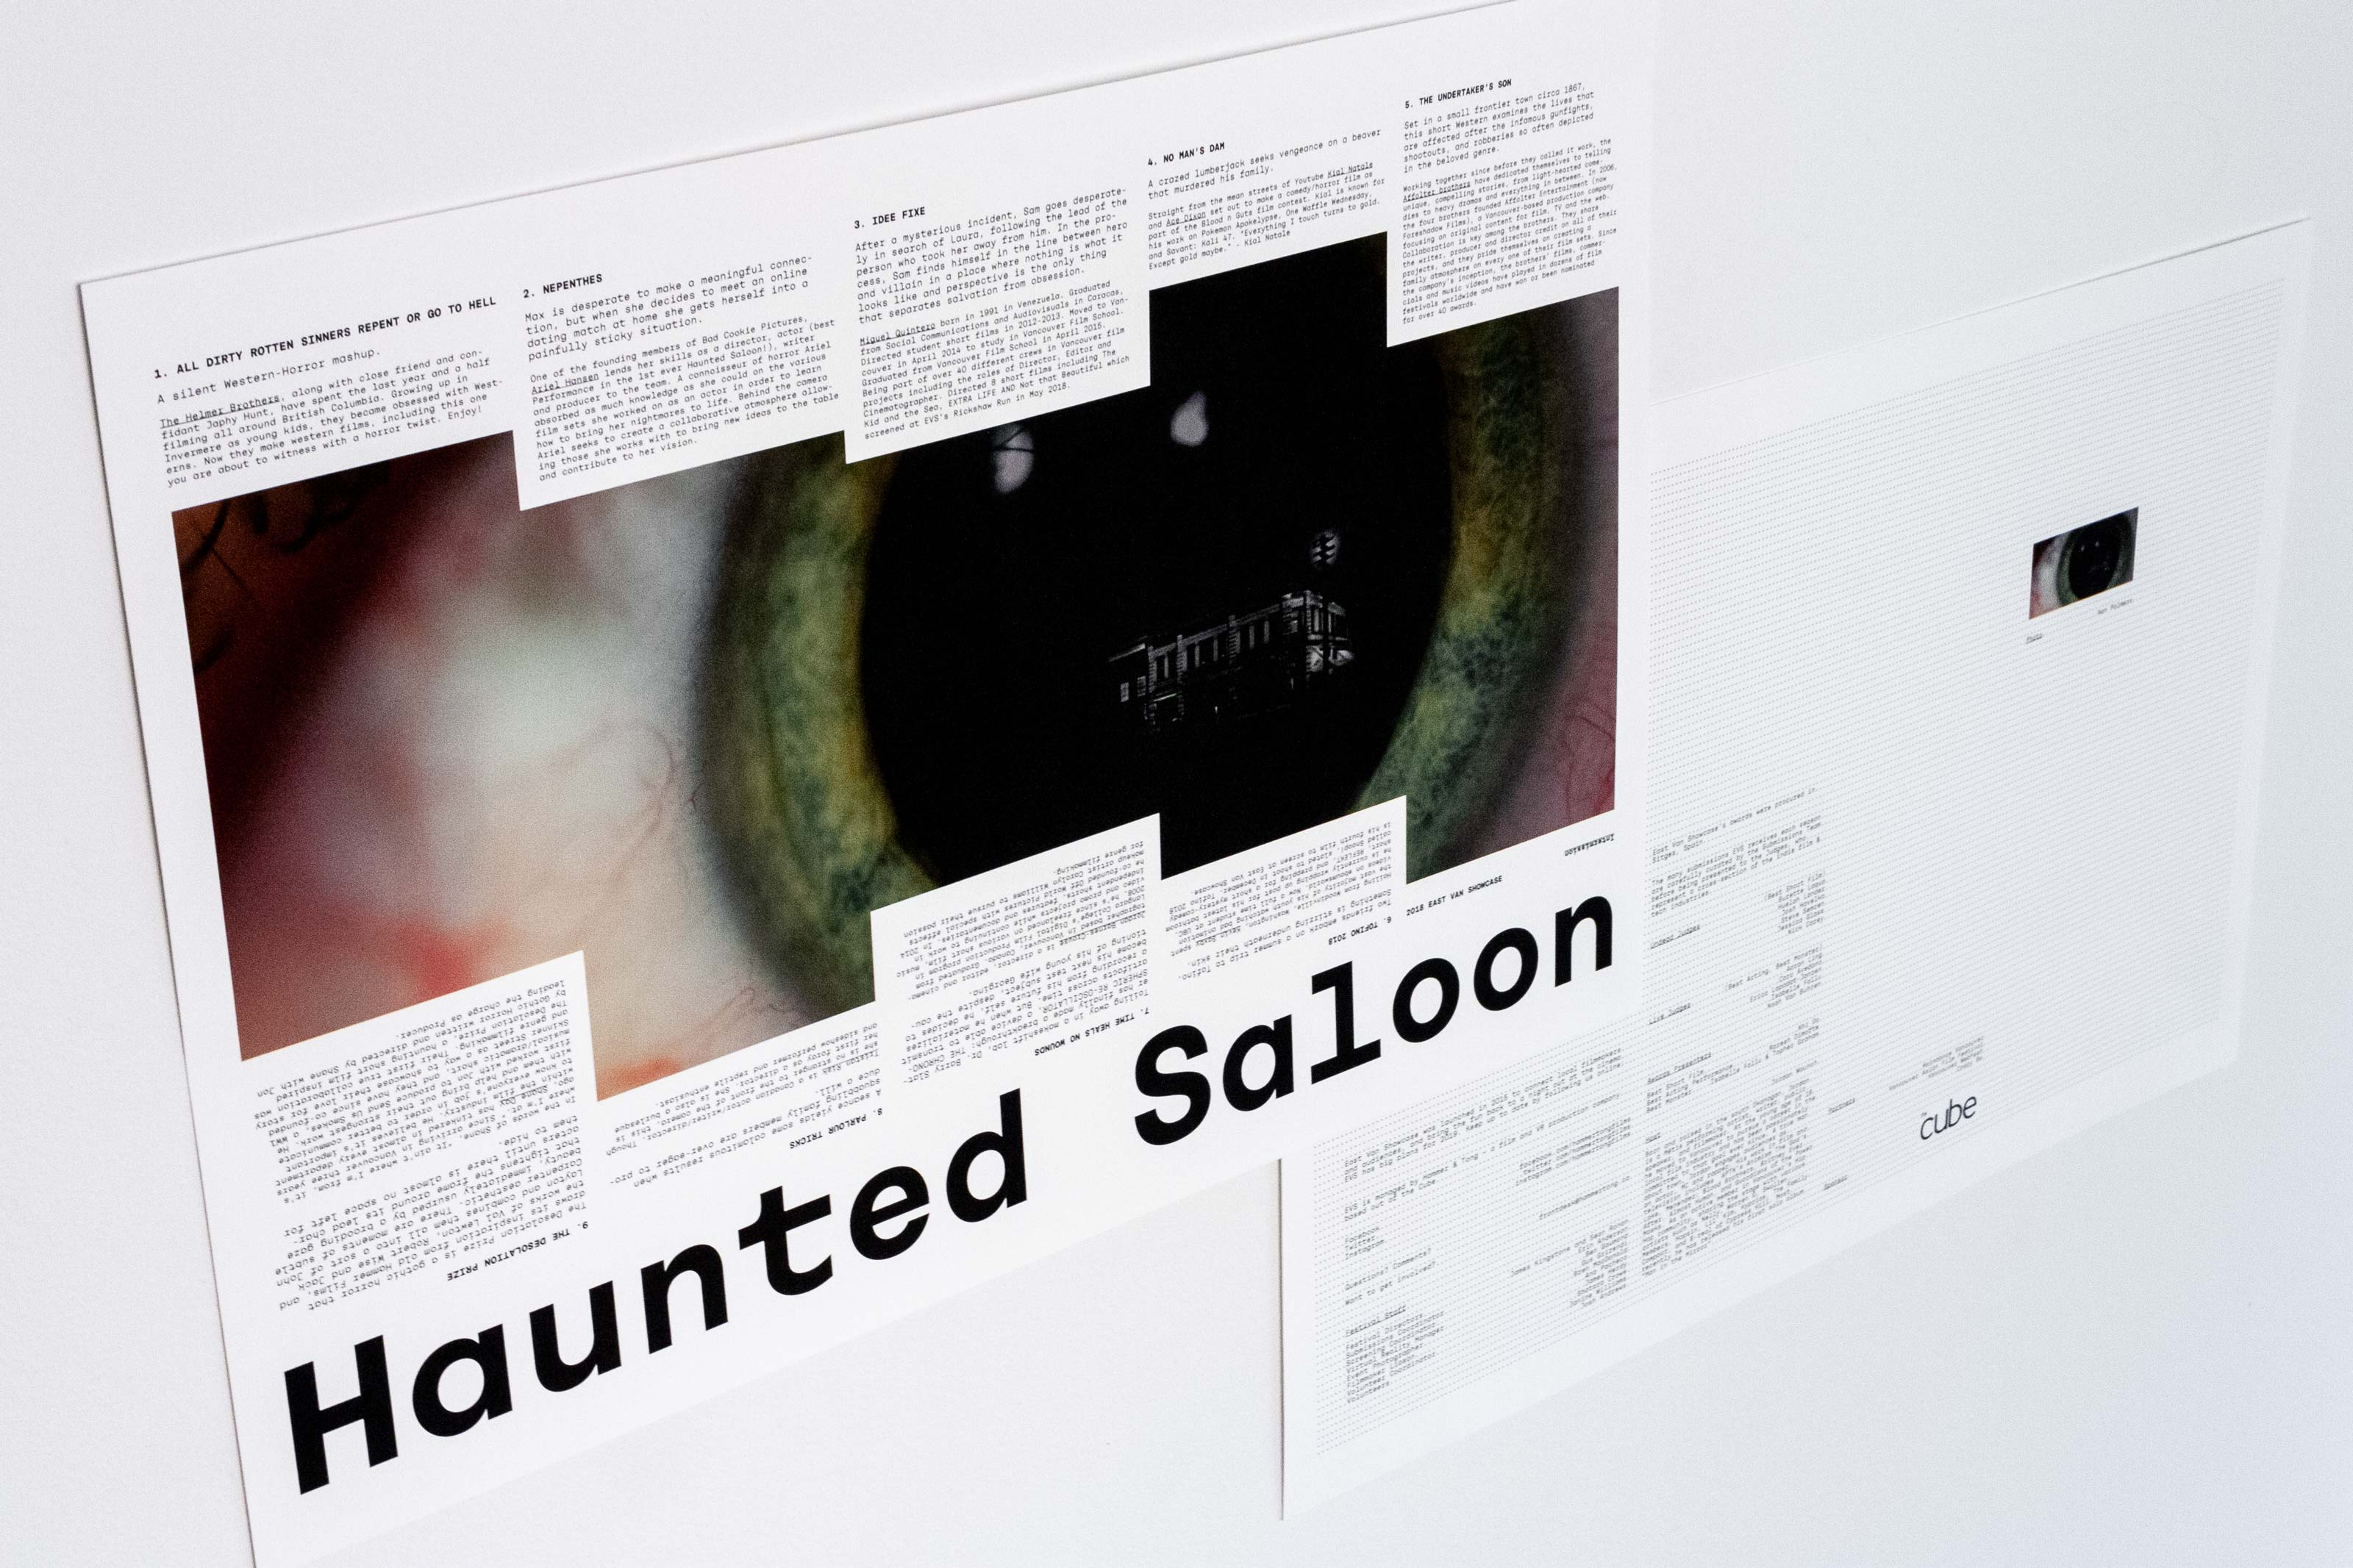 Haunted Saloon poster featuring a close-up of a bloodshot eye — by Yagnyuk.